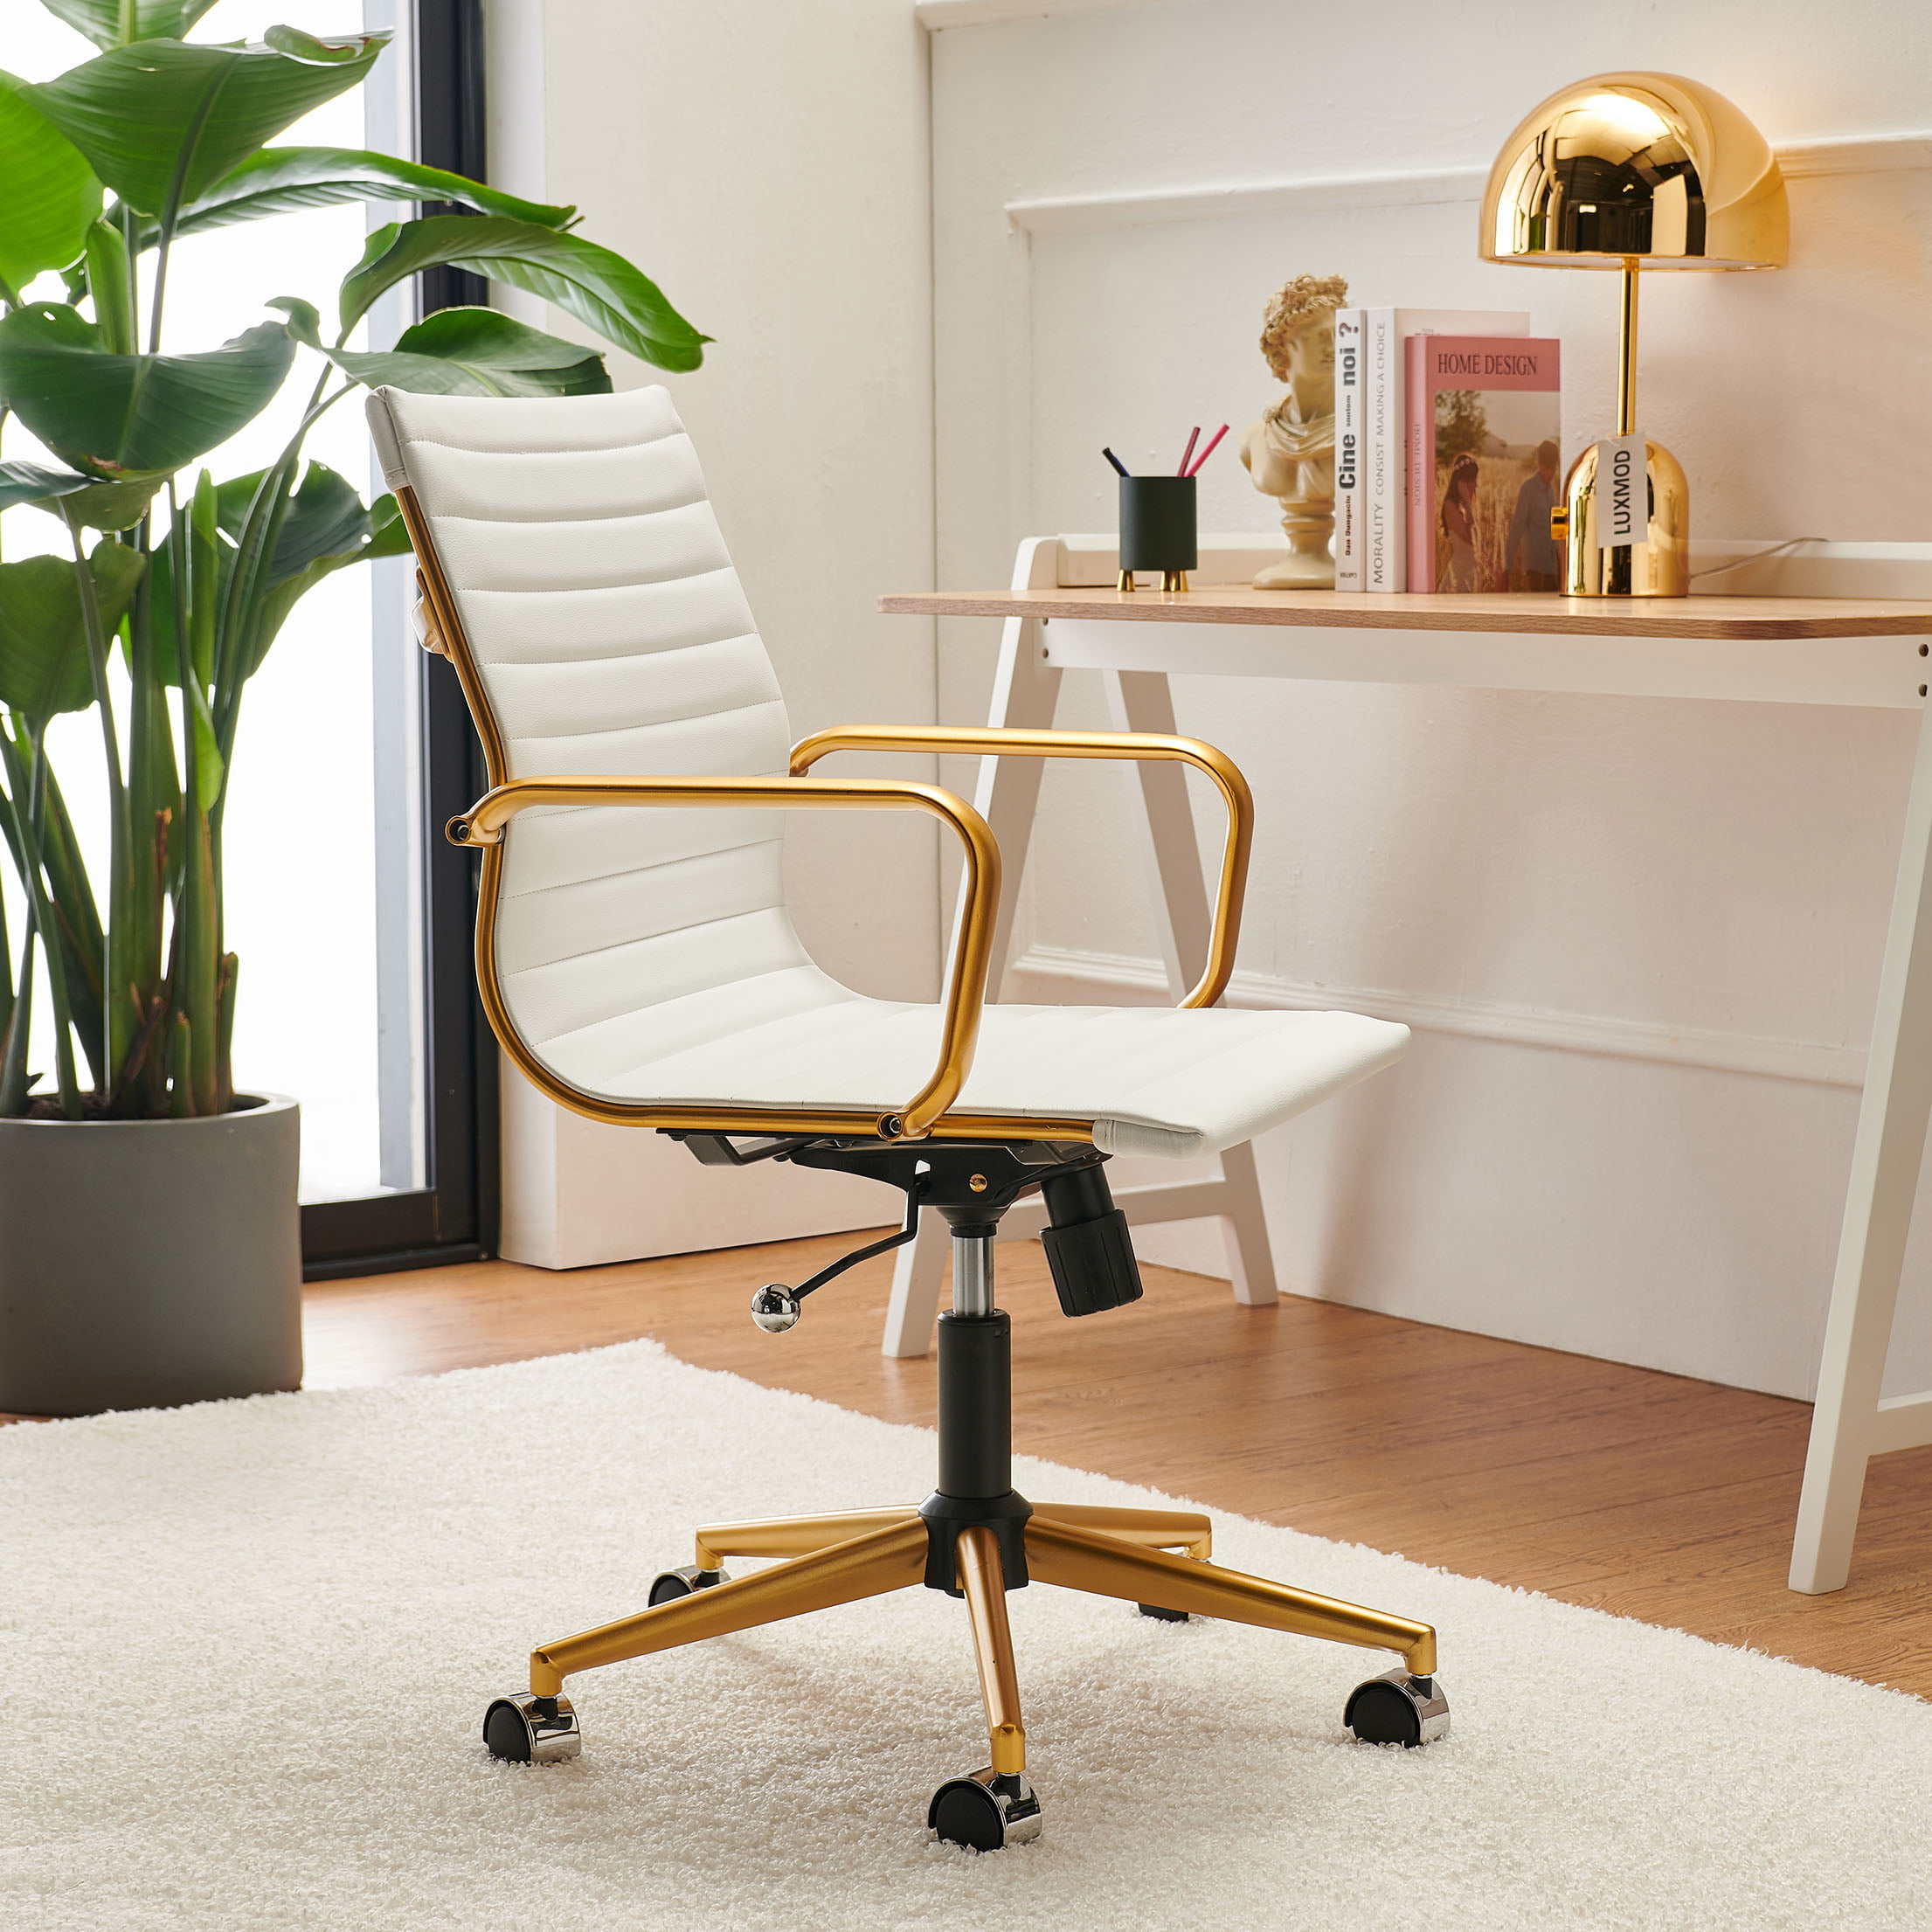 Luxmod Mid Back Gold Office Chair In, White Leather Computer Chairs